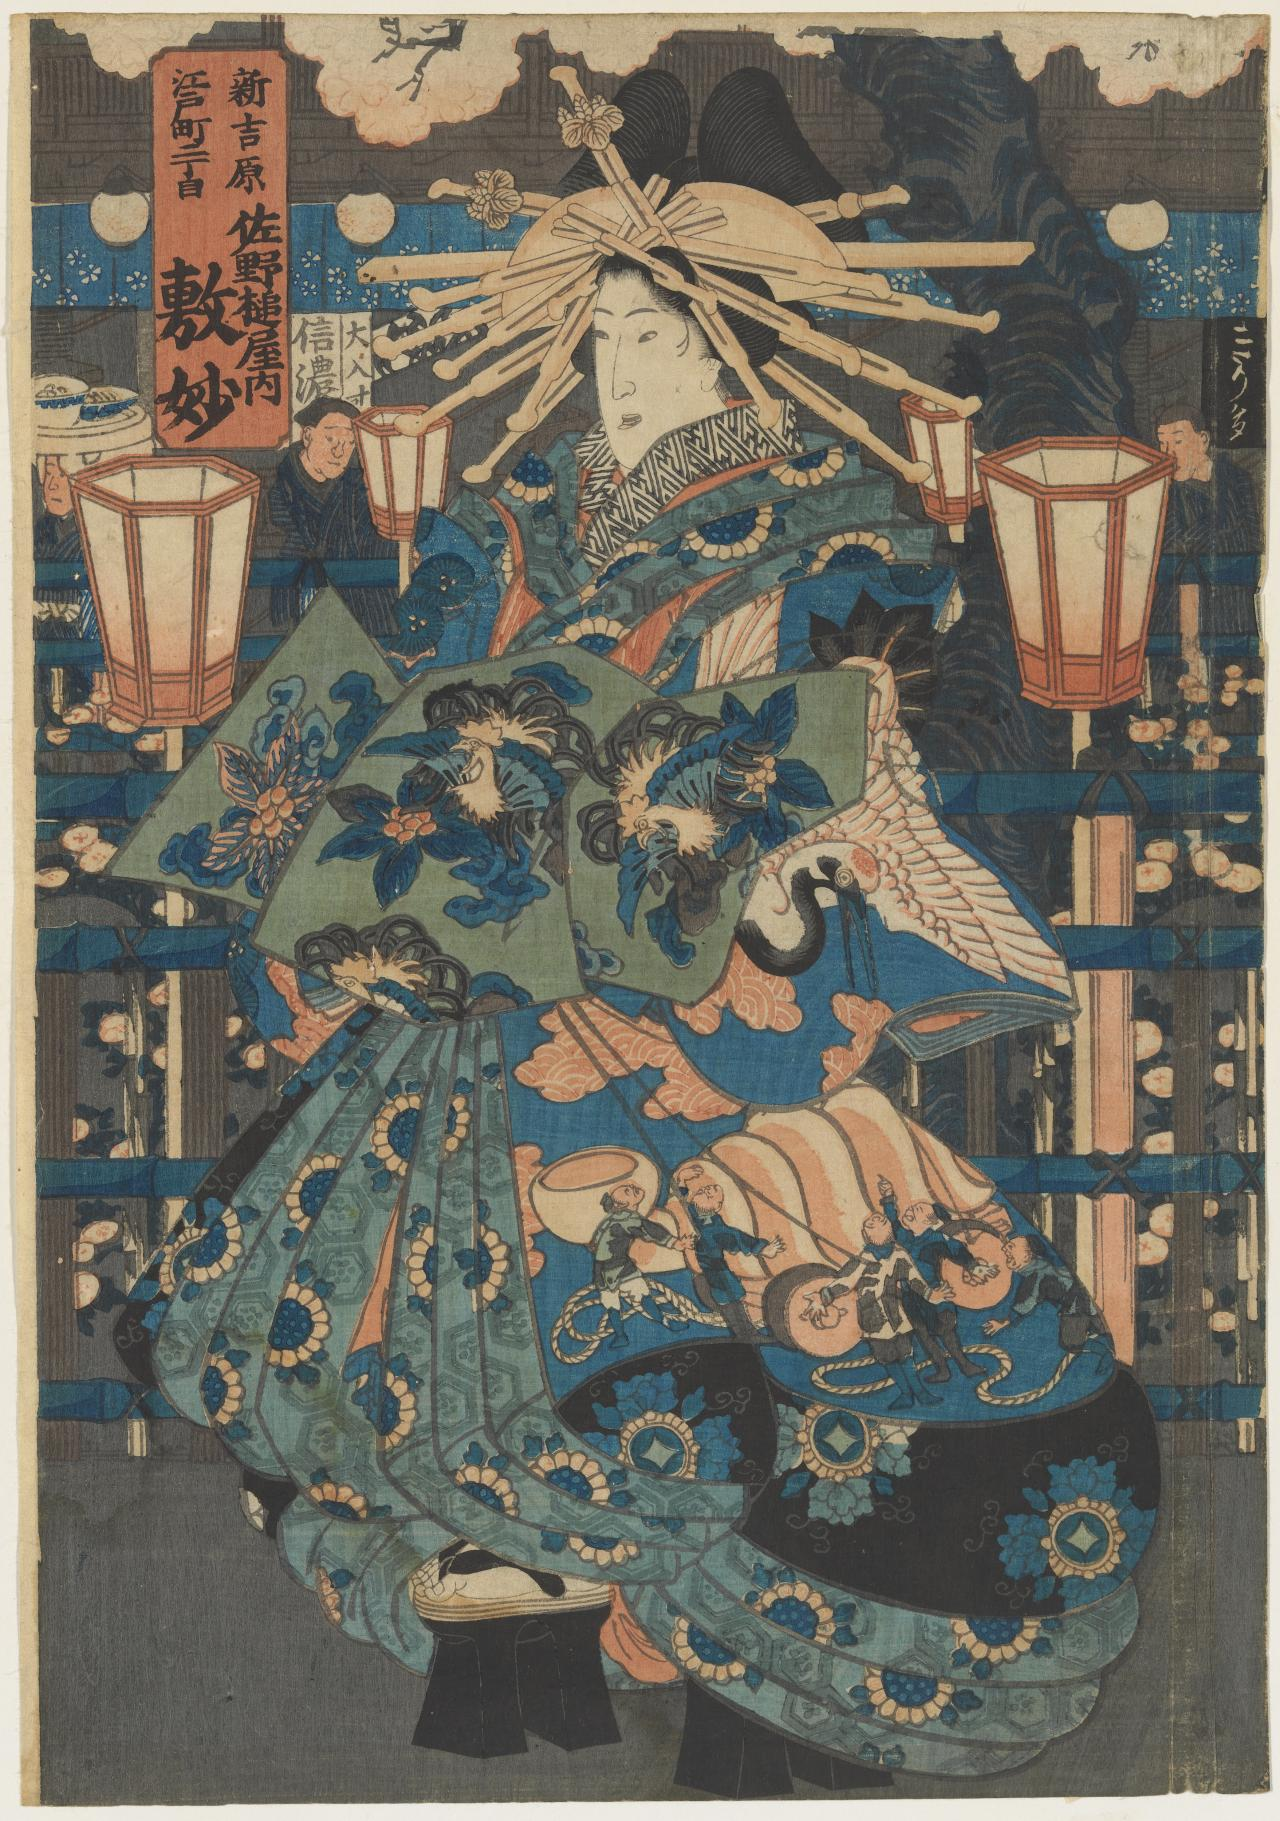 Shikitae of the House of Sano, from the series of oiran from New Yoshiwara, Edo, second district. Shin Yoshiwara Edocho nichome. Sanozuchiyanai Shikitae